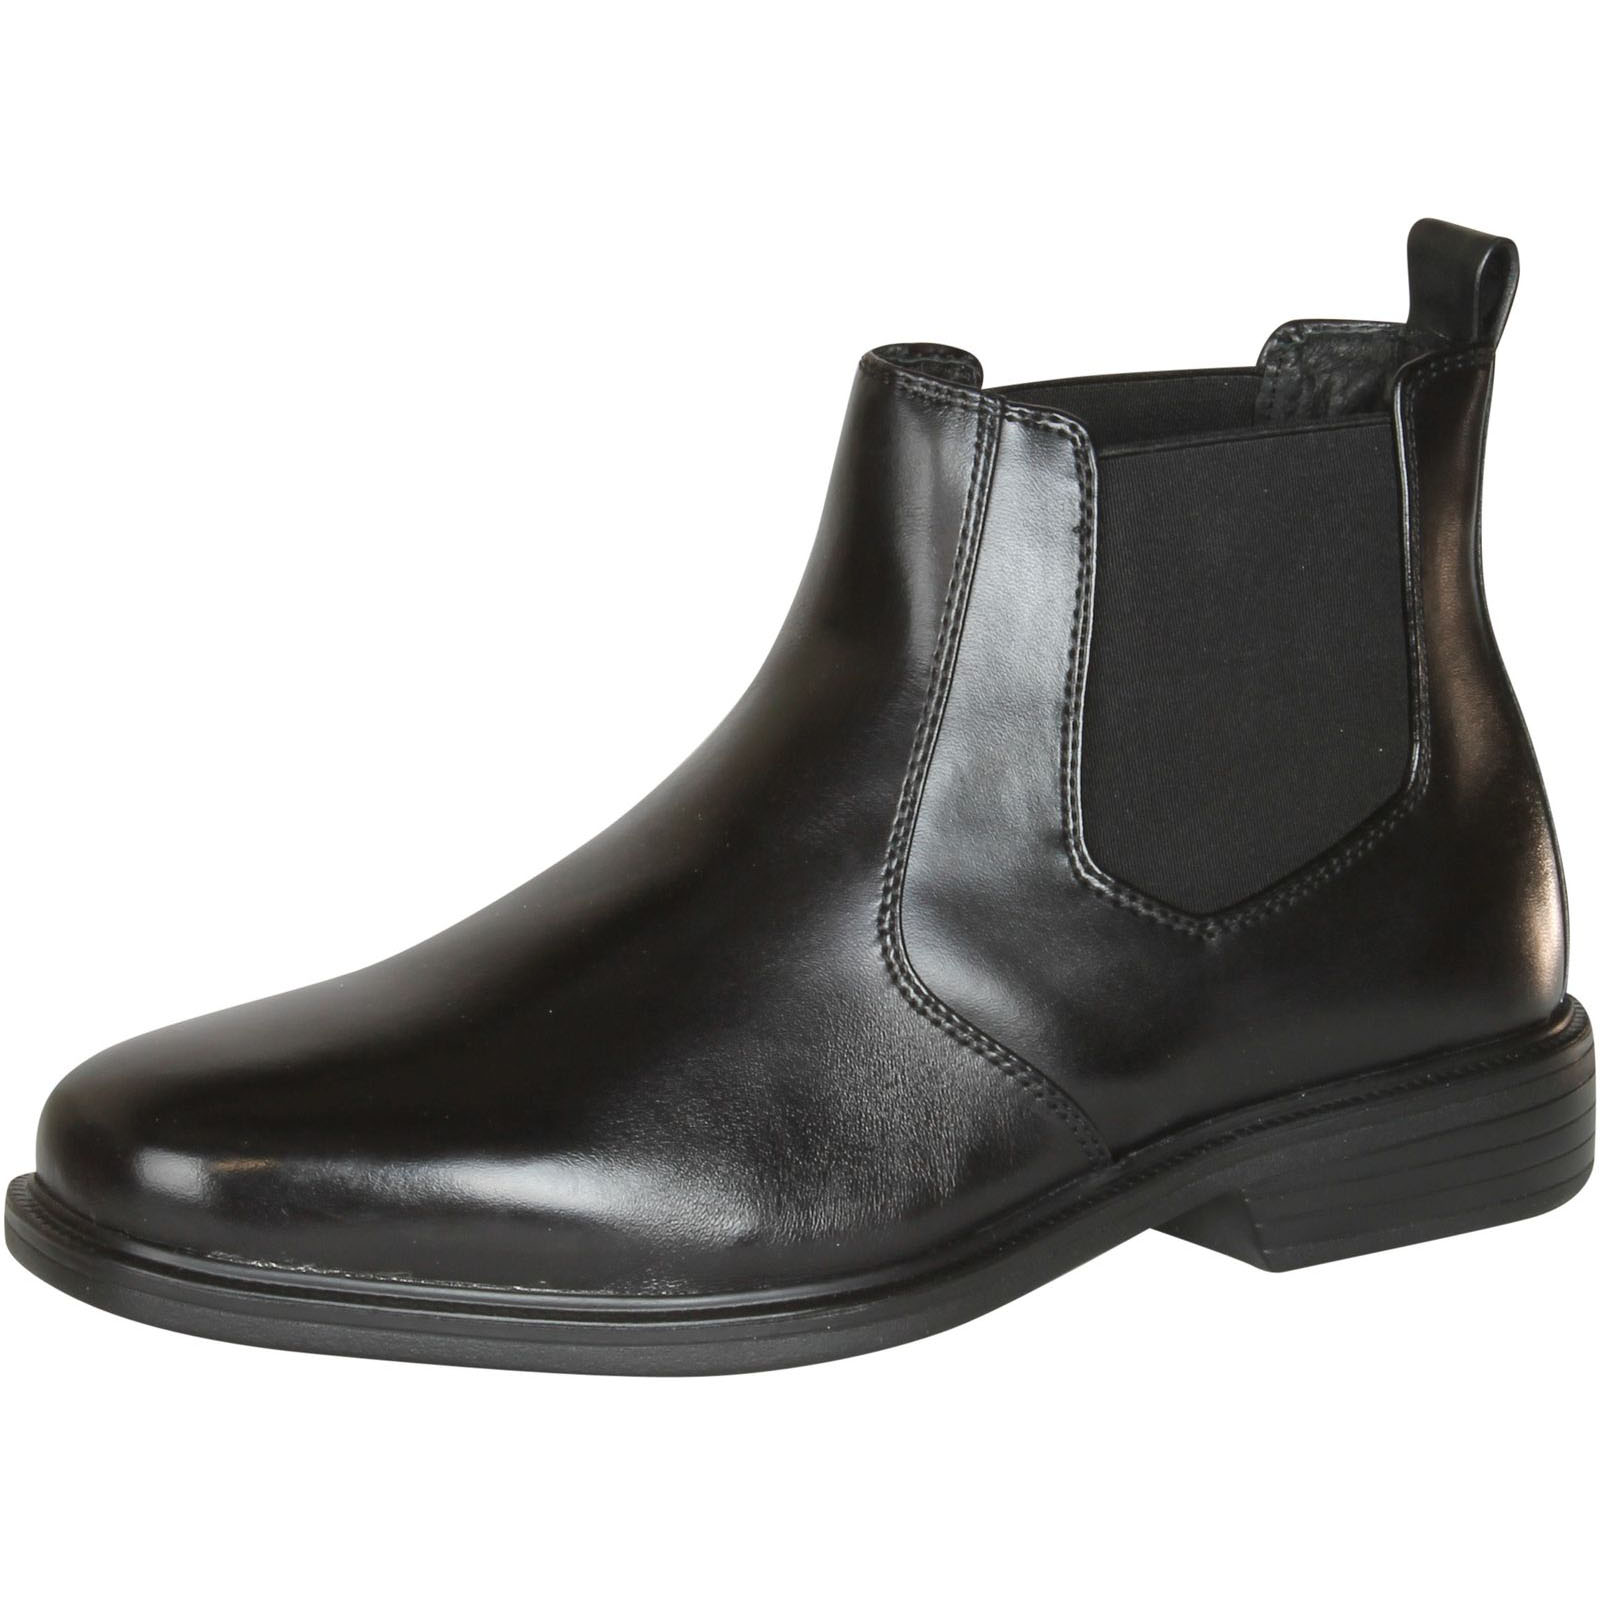 Giorgio Brutini Mens Leather Wide Width Boots,Black,8W, Size: 8 Wide Men's US